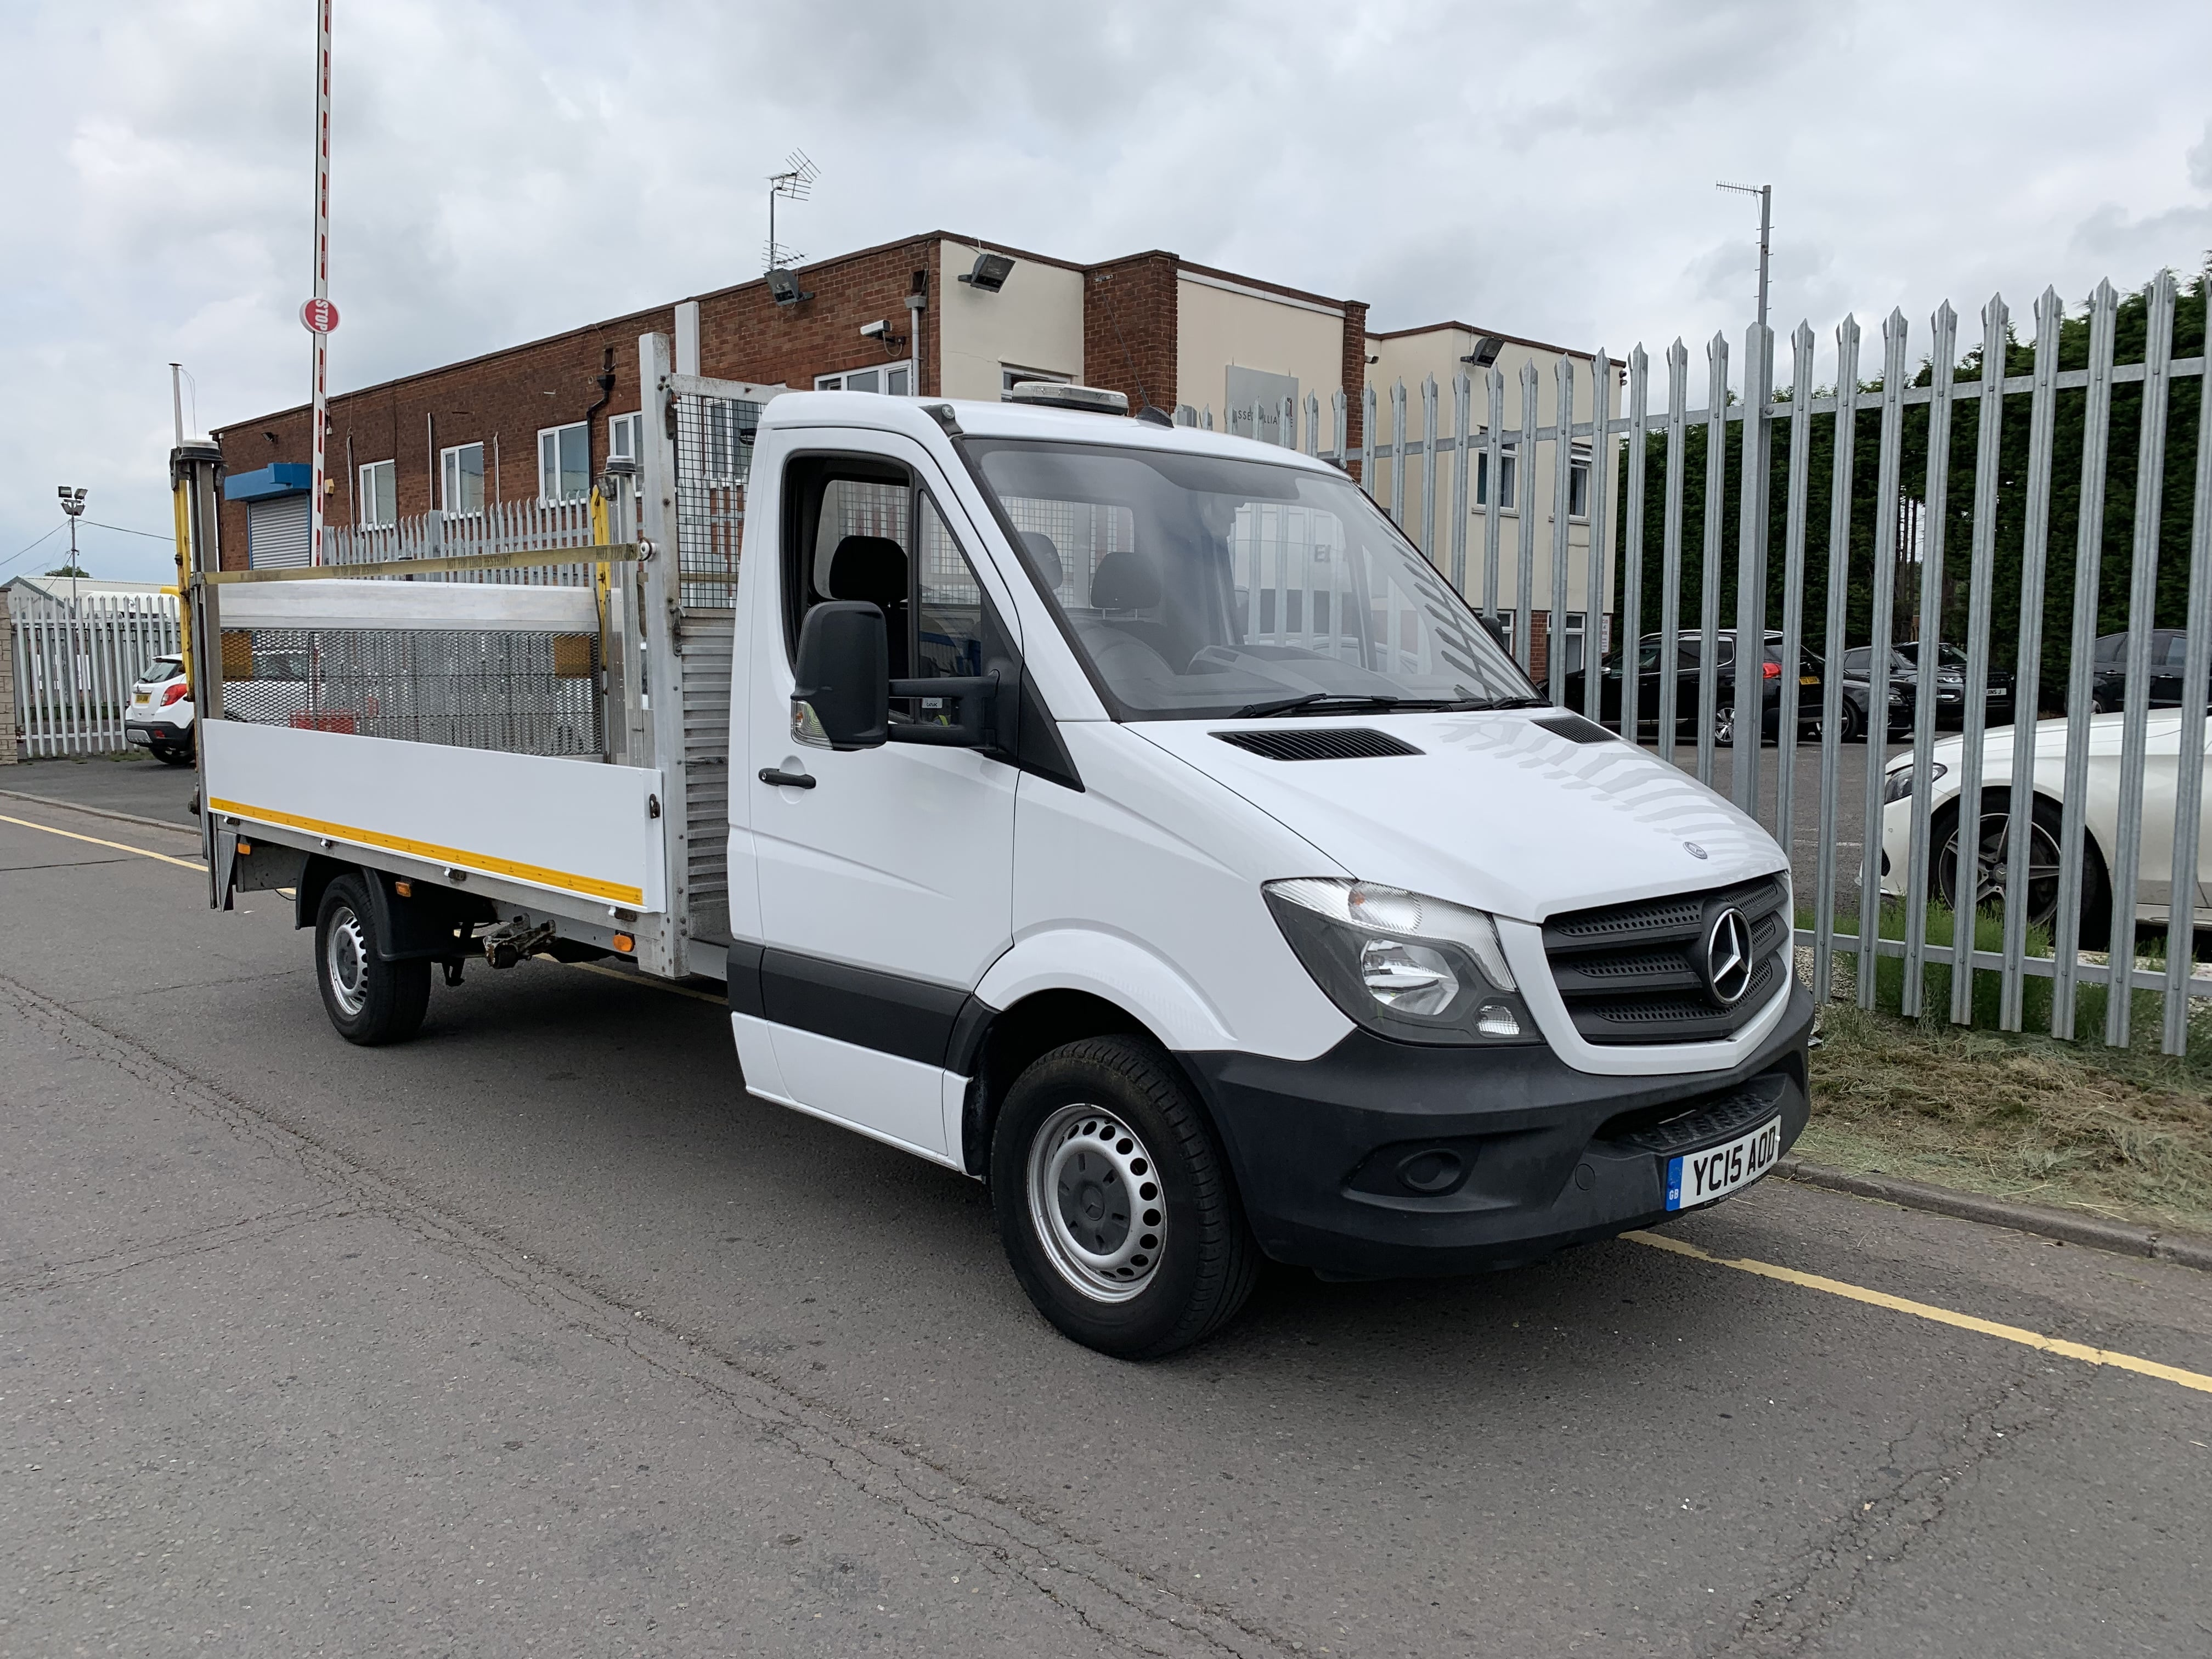 2015 Mercedes Dropside Sprinter. 109,678 Miles, Manual Gearbox, Aluminium Dropsides, Del 500kg rear tail lift facility, reverse camera, top beacon light, 235/65r16 wheels and tyres, 3 seater cabs.